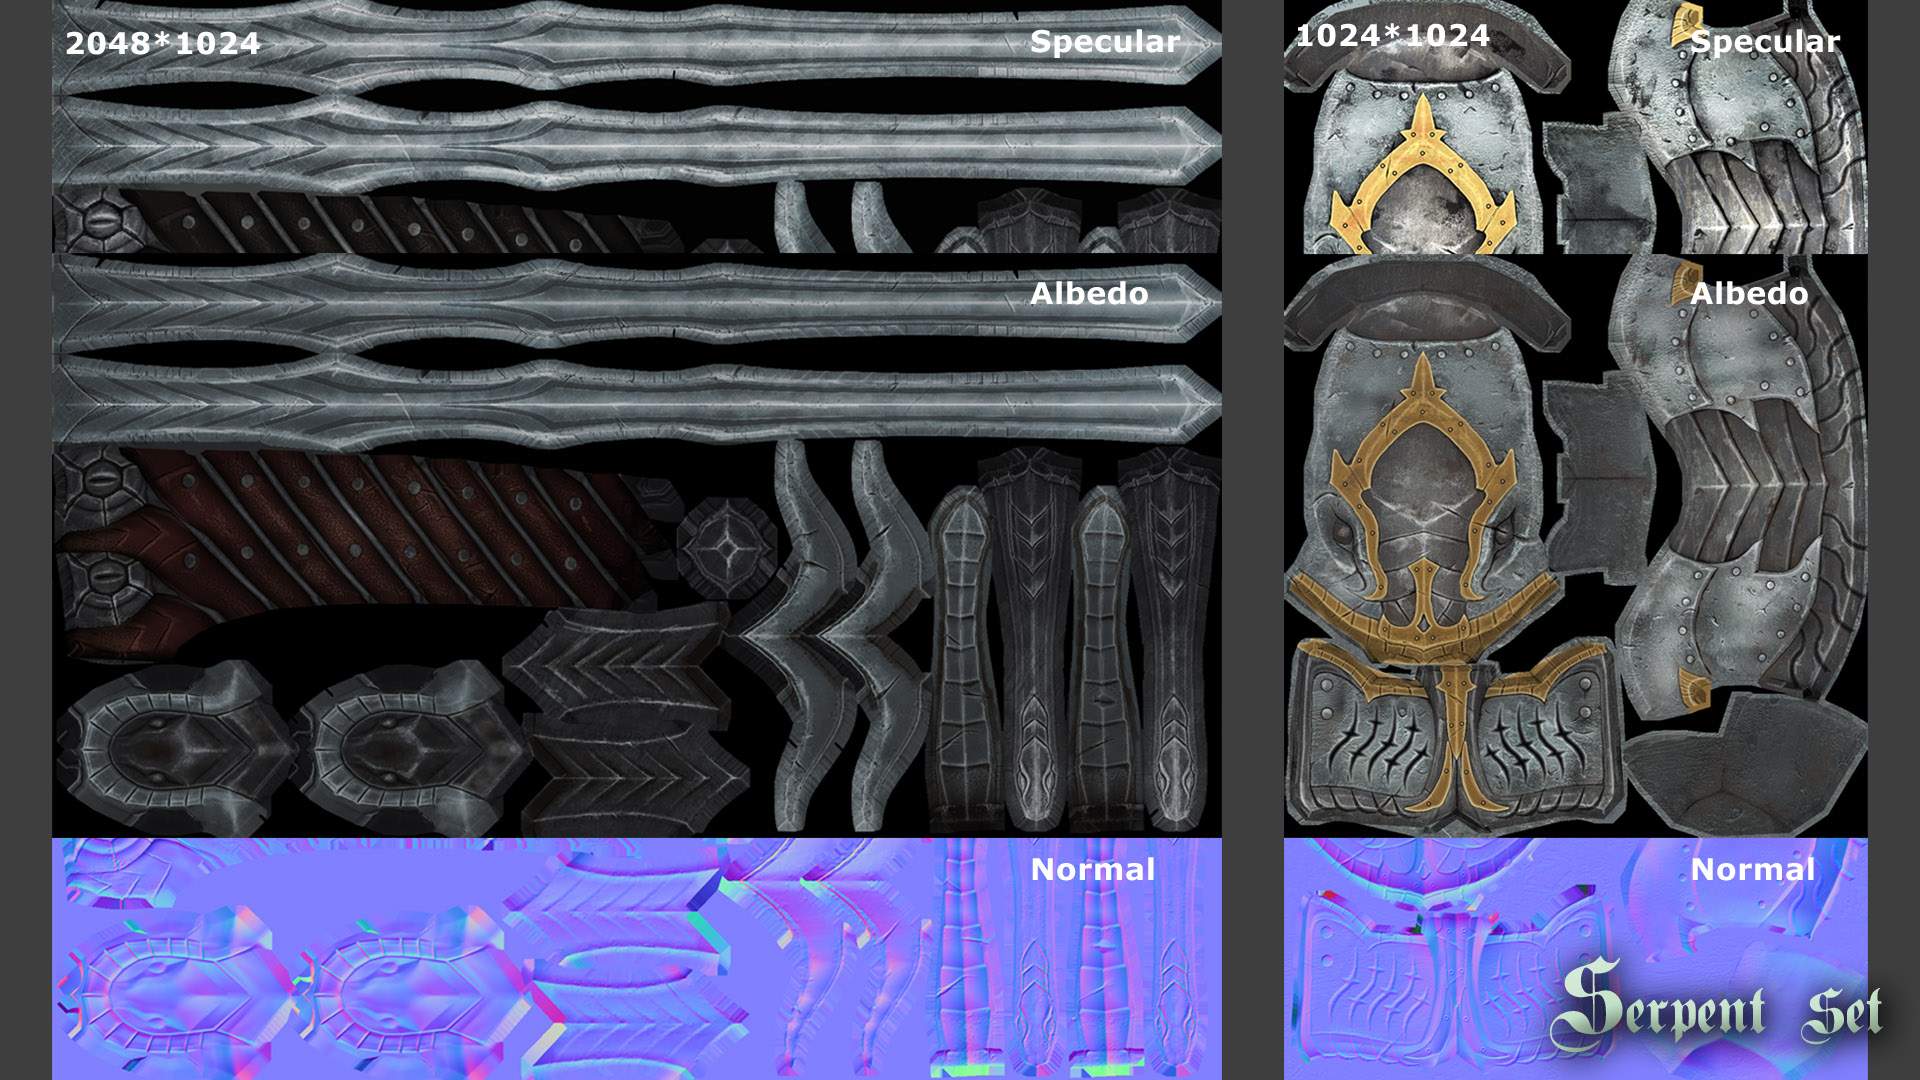 Serpent_set_textures.jpg